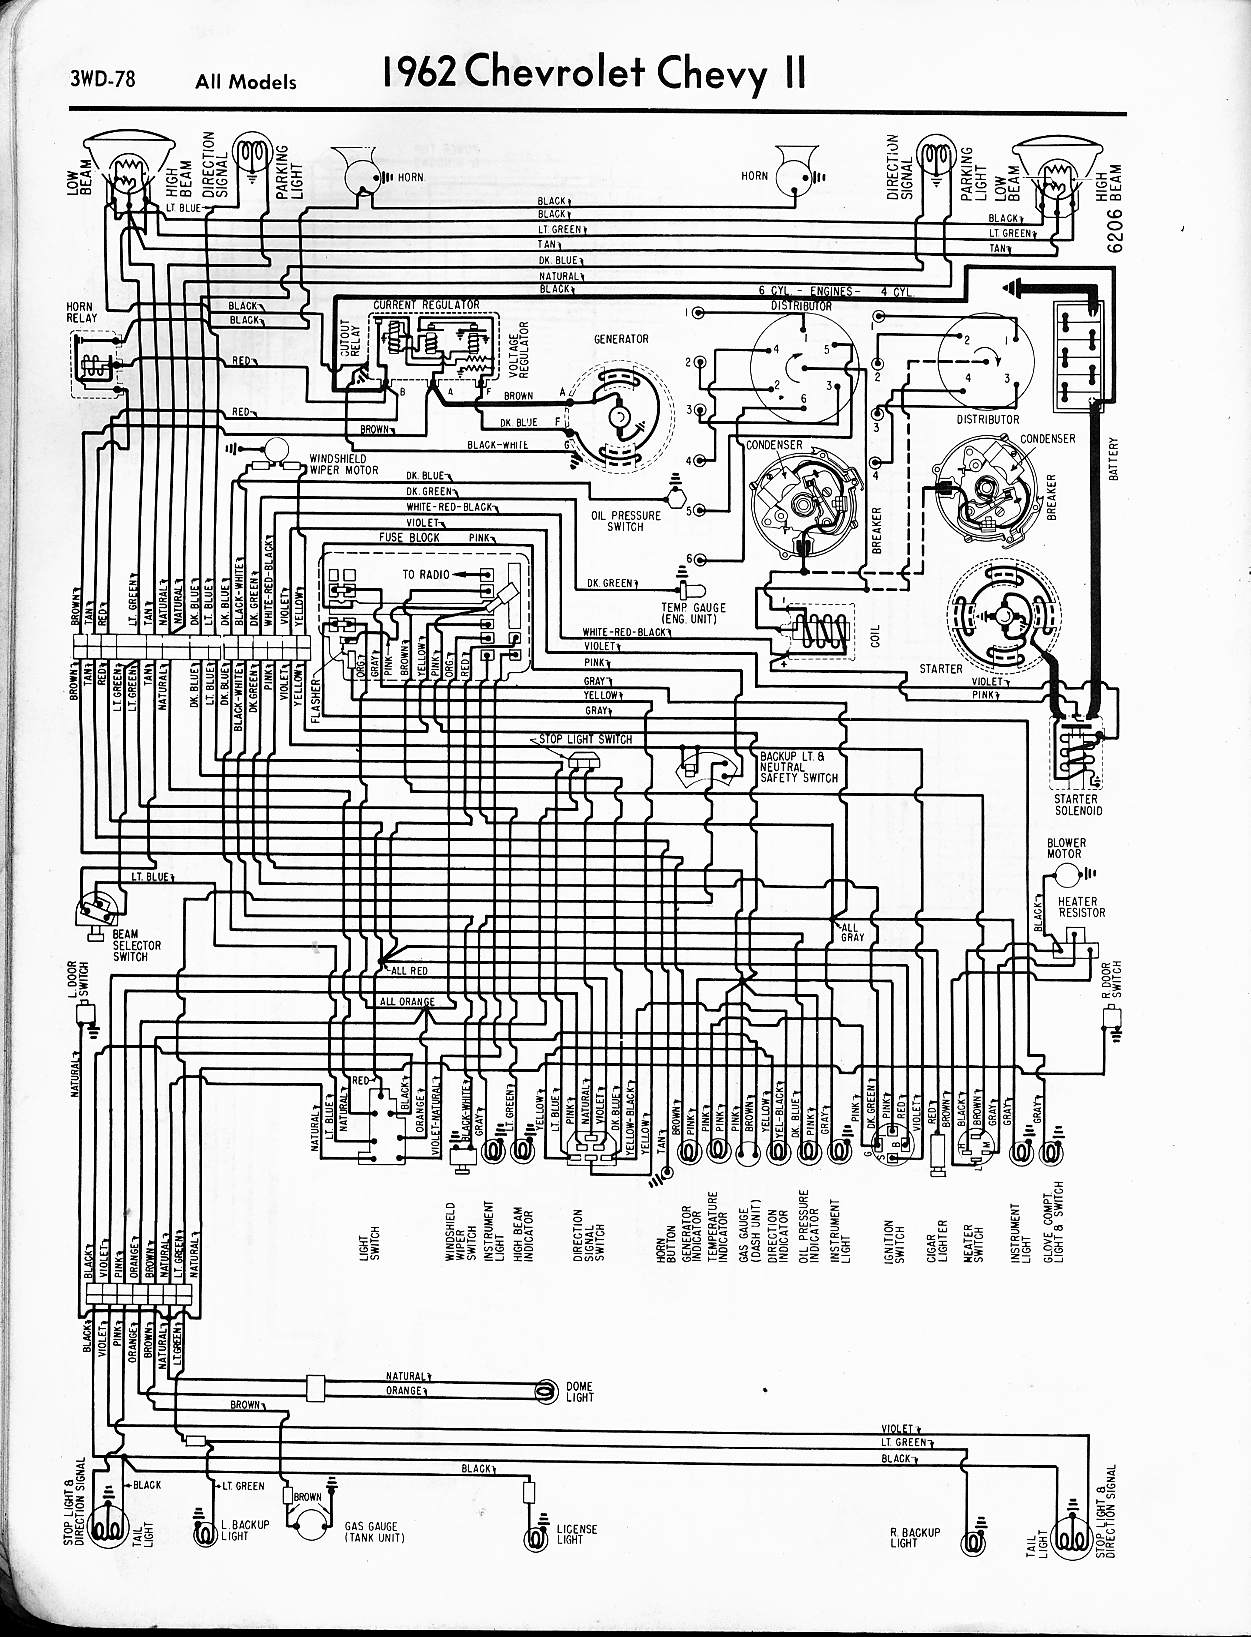 57 65 Chevy Wiring Diagrams Simple Generator Ac Diagram 1962 Ii All Models